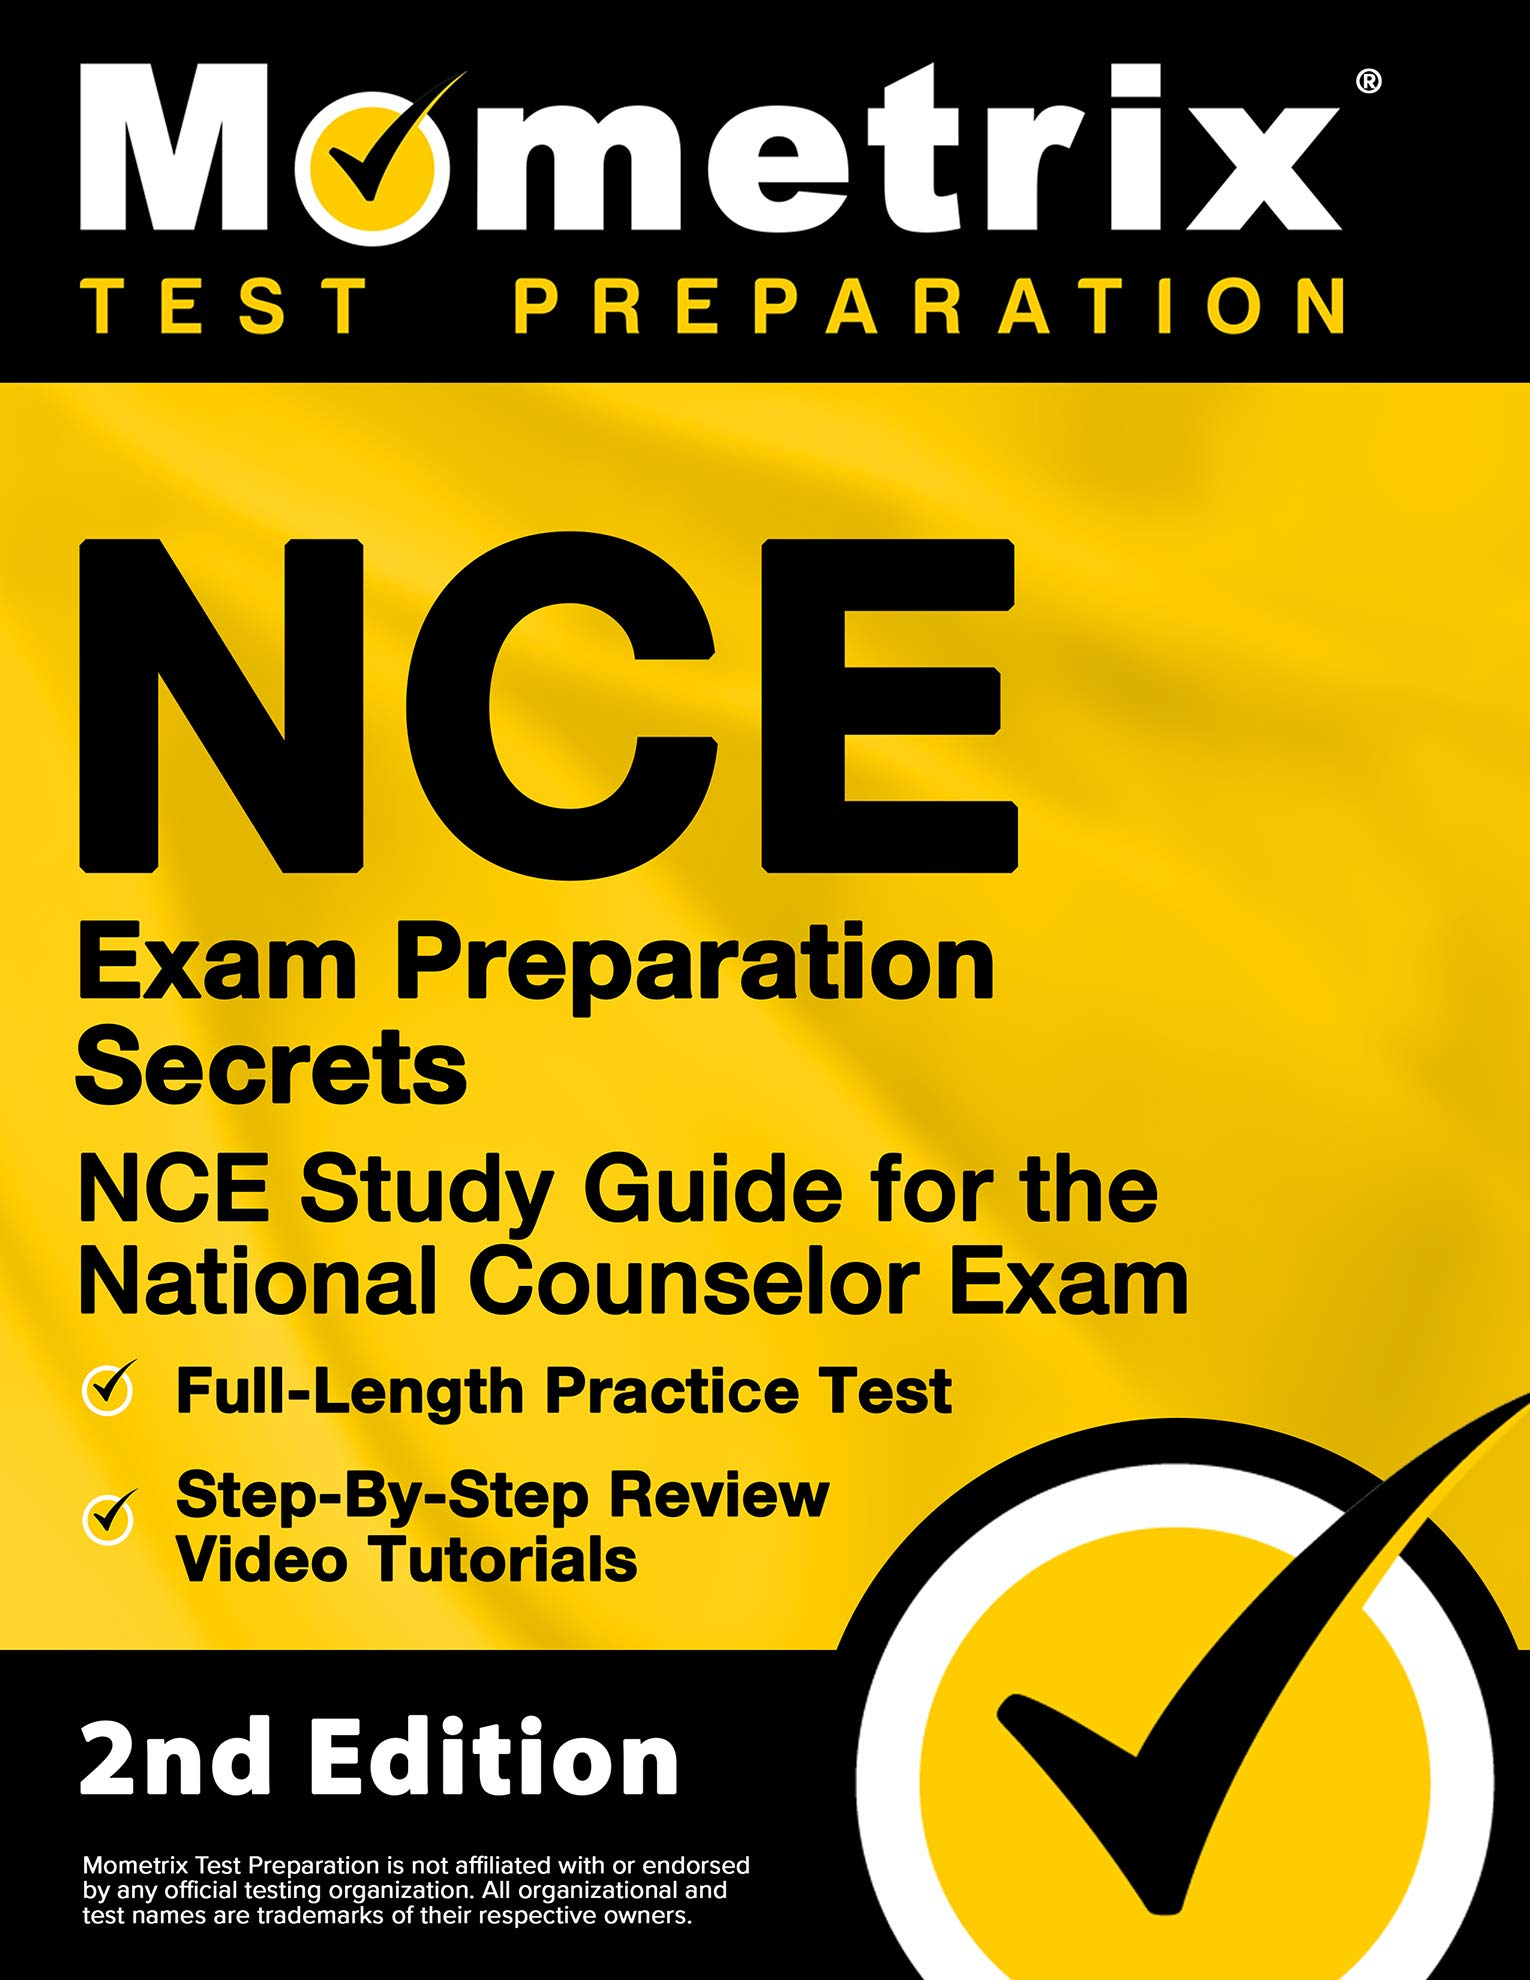 NCE Exam Preparation Secrets - NCE Study Guide, Full-Length Practice Test,  Step-by-Step Review Video Tutorials for the National Counselor Exam [2nd  Edition]: Mometrix Test Prep: 9781516730575: Amazon.com: Books